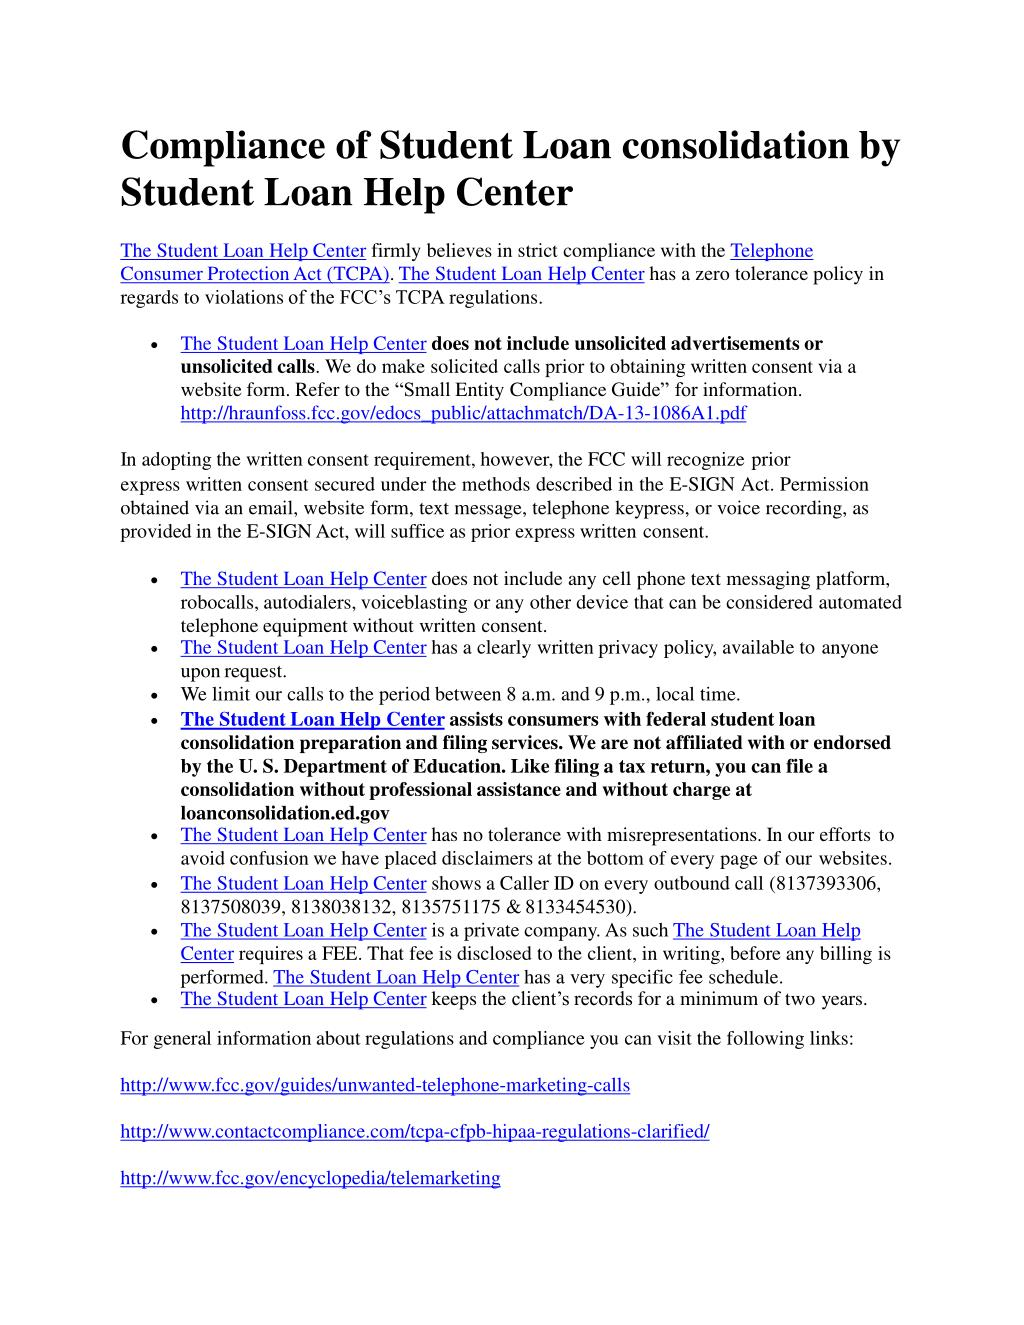 ppt - compliance of student loan consolidation by the student loan